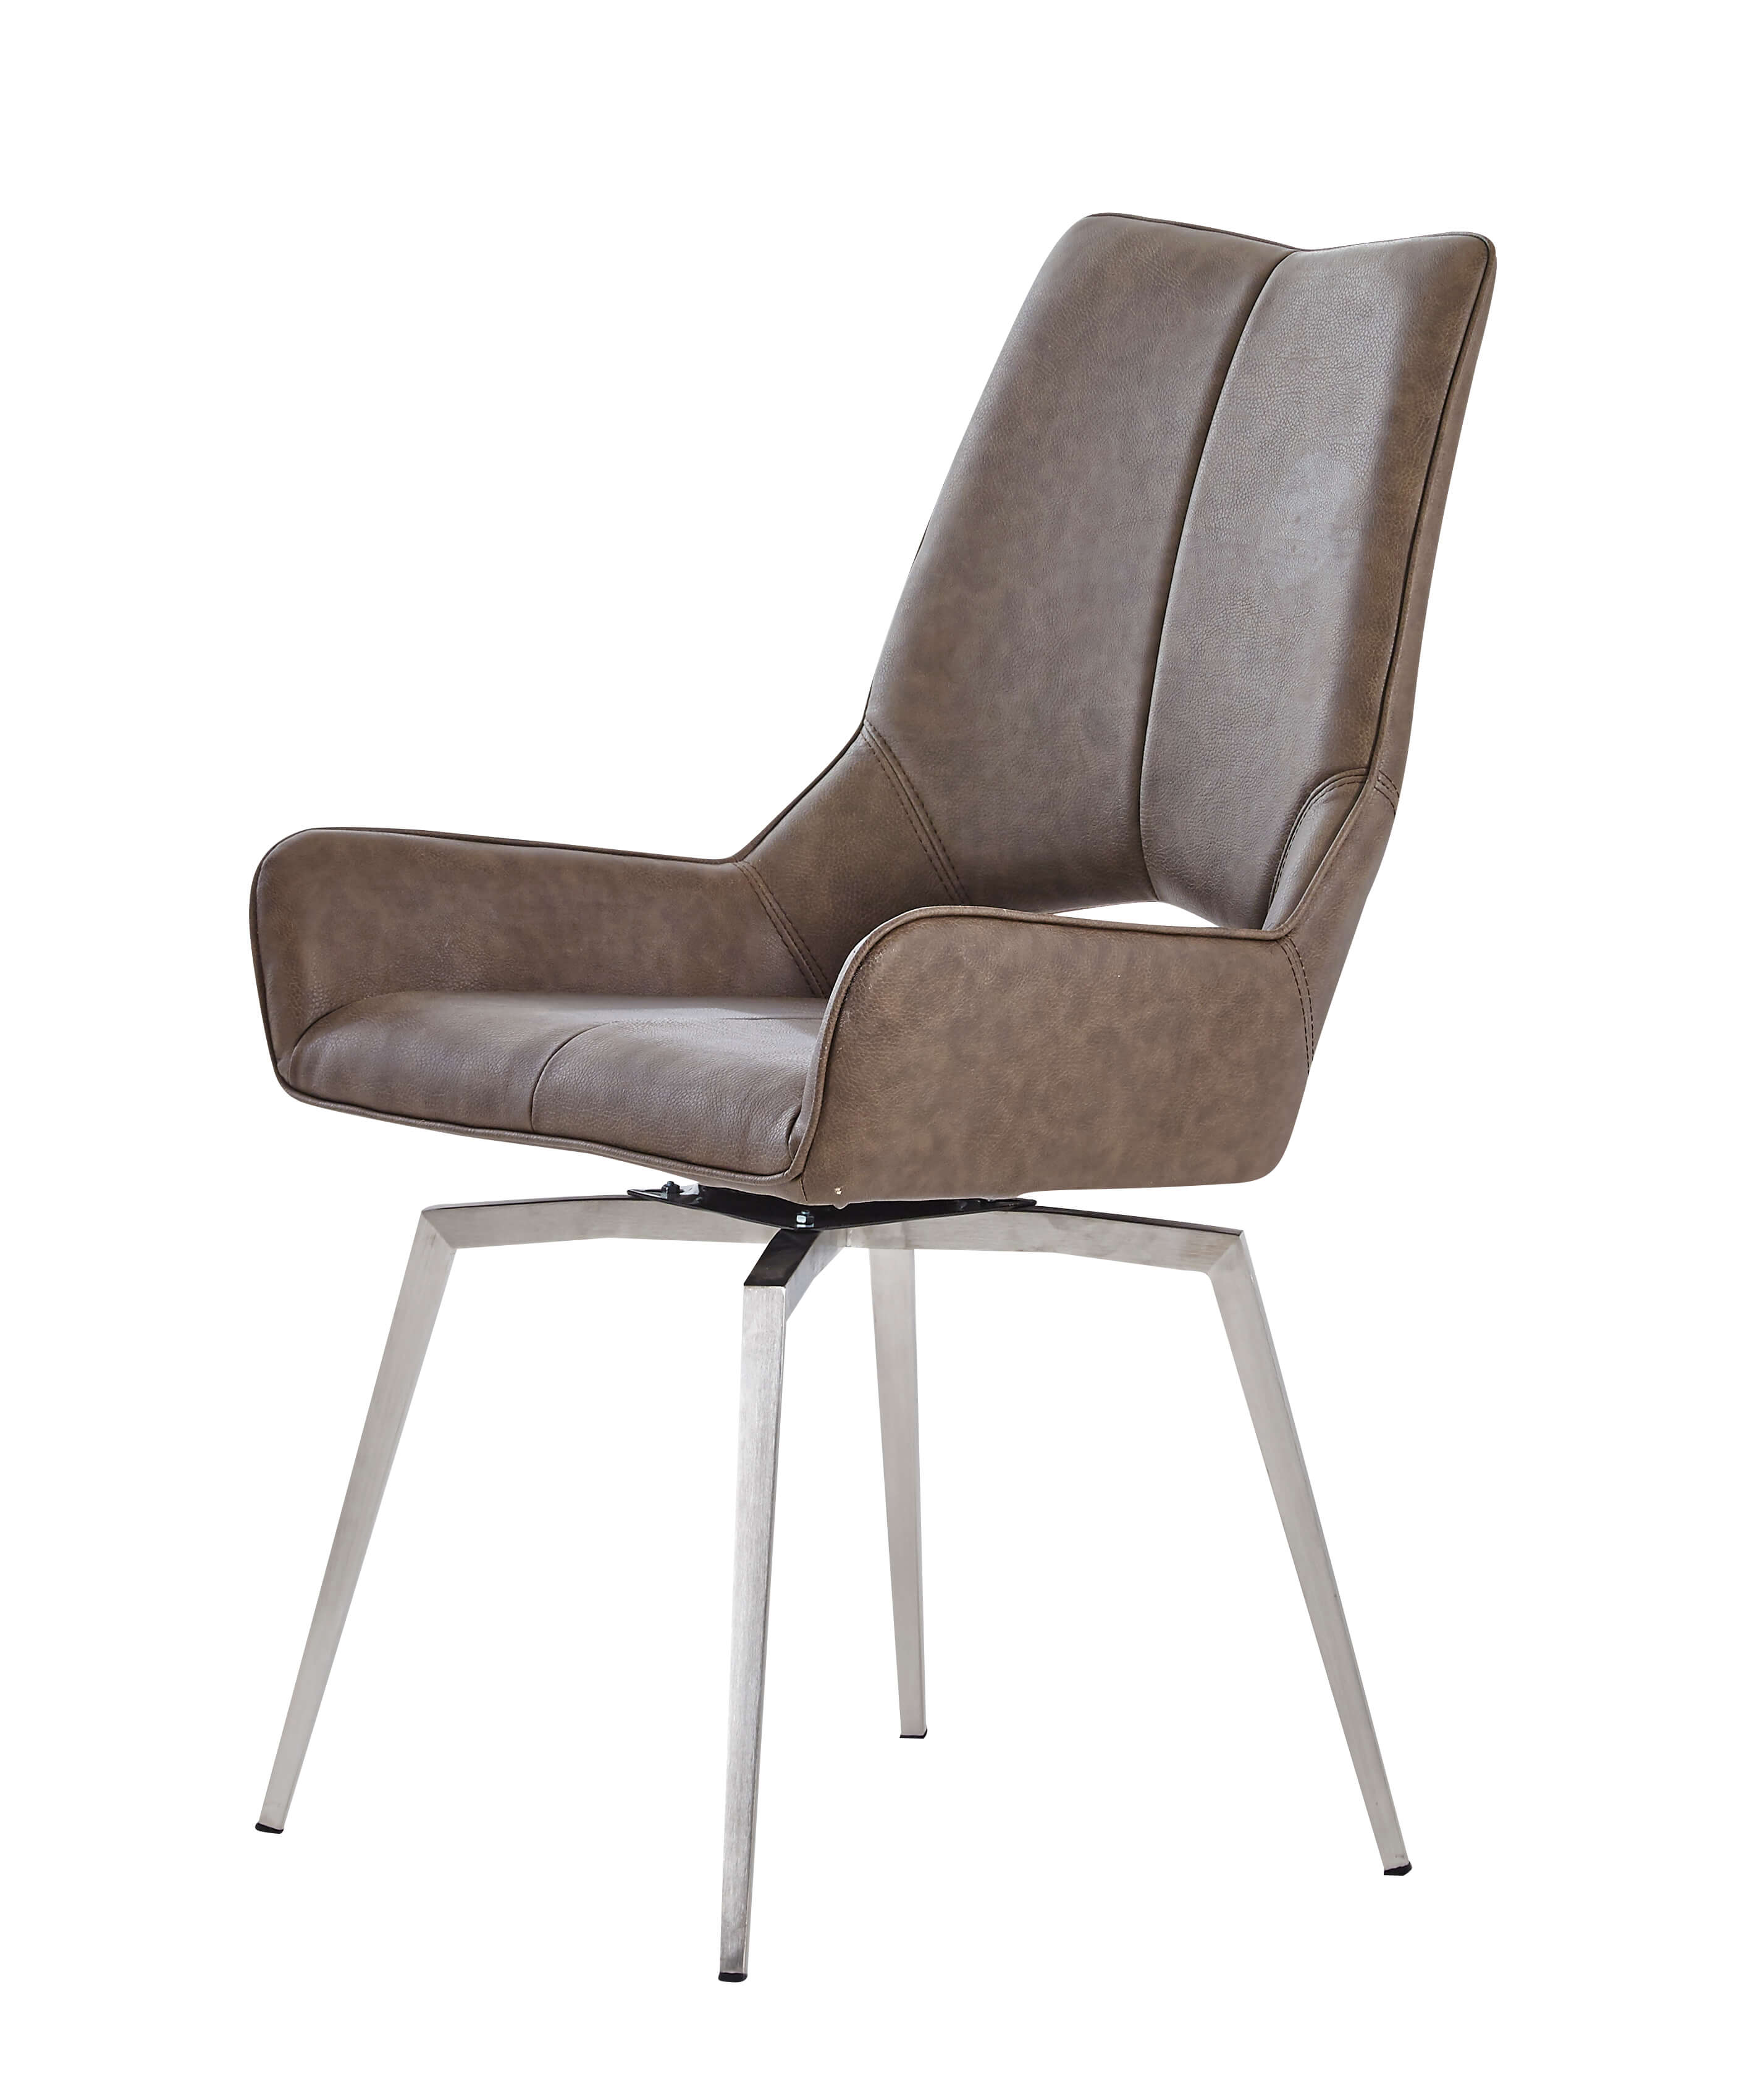 Contemporary Swivel Chairs Contemporary Marble Finish With White Swivel Chairs